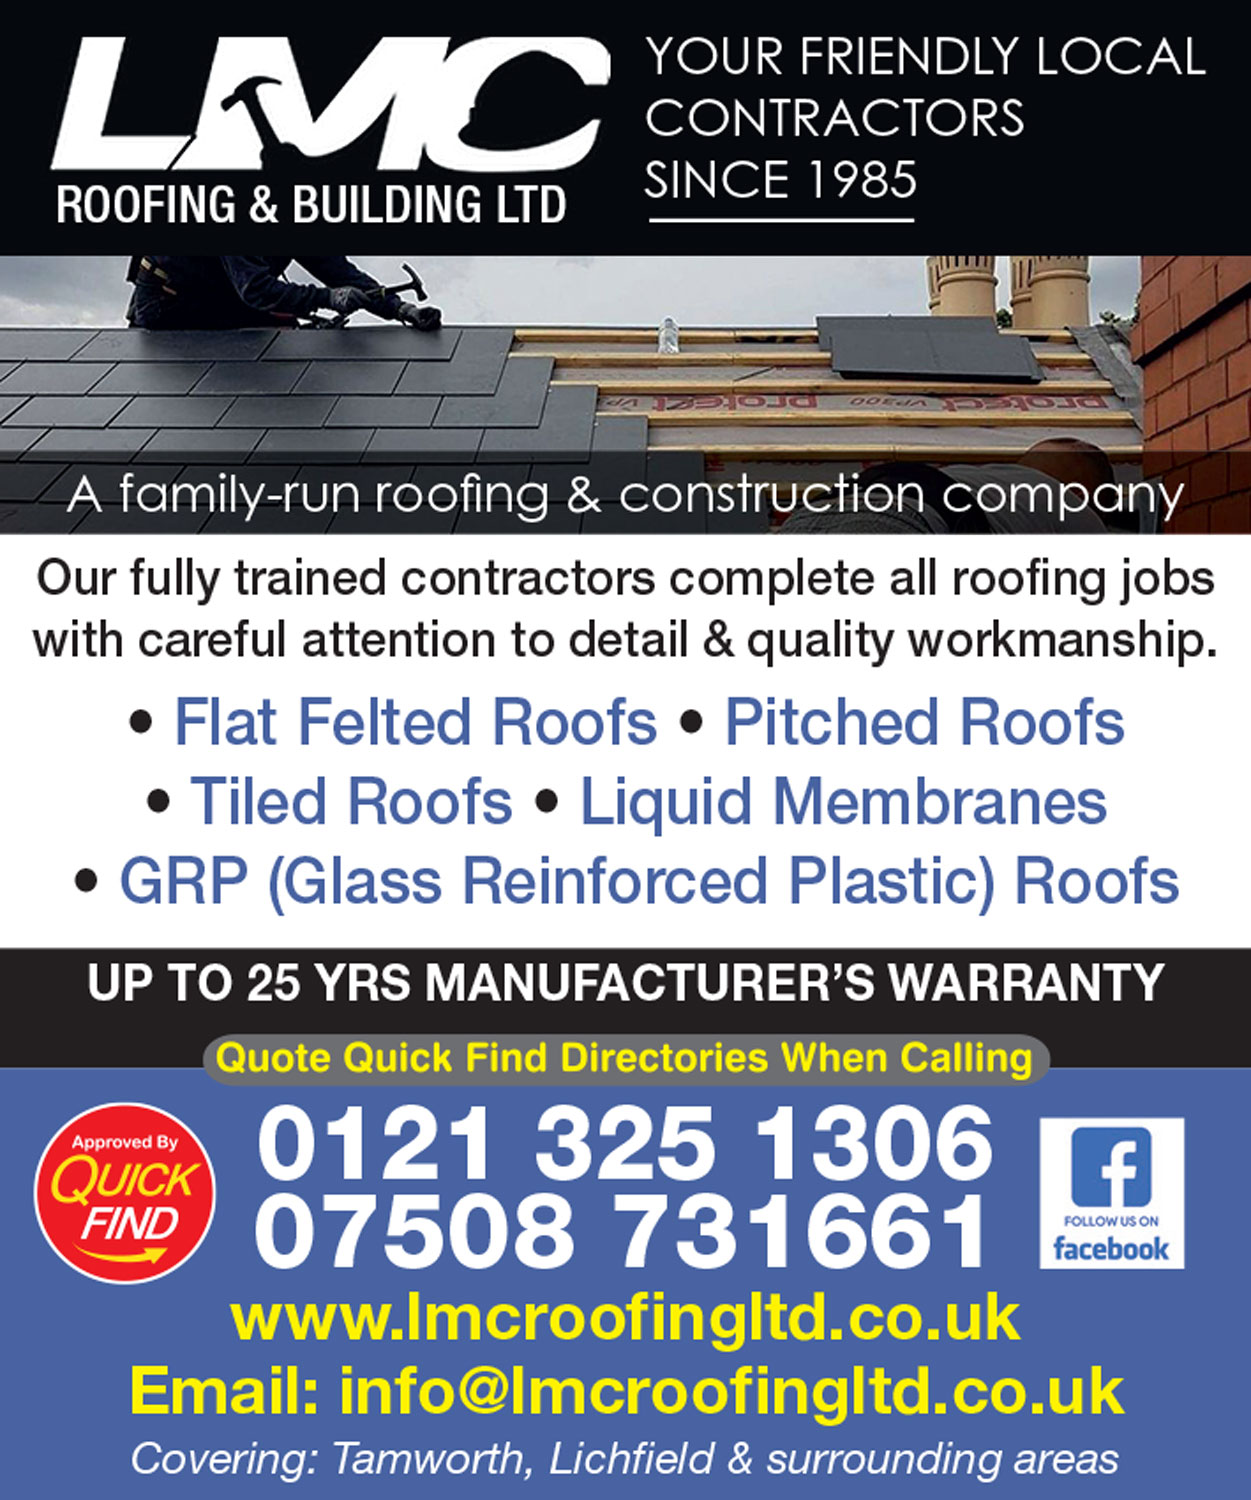 LMC Roofing & Building Ltd